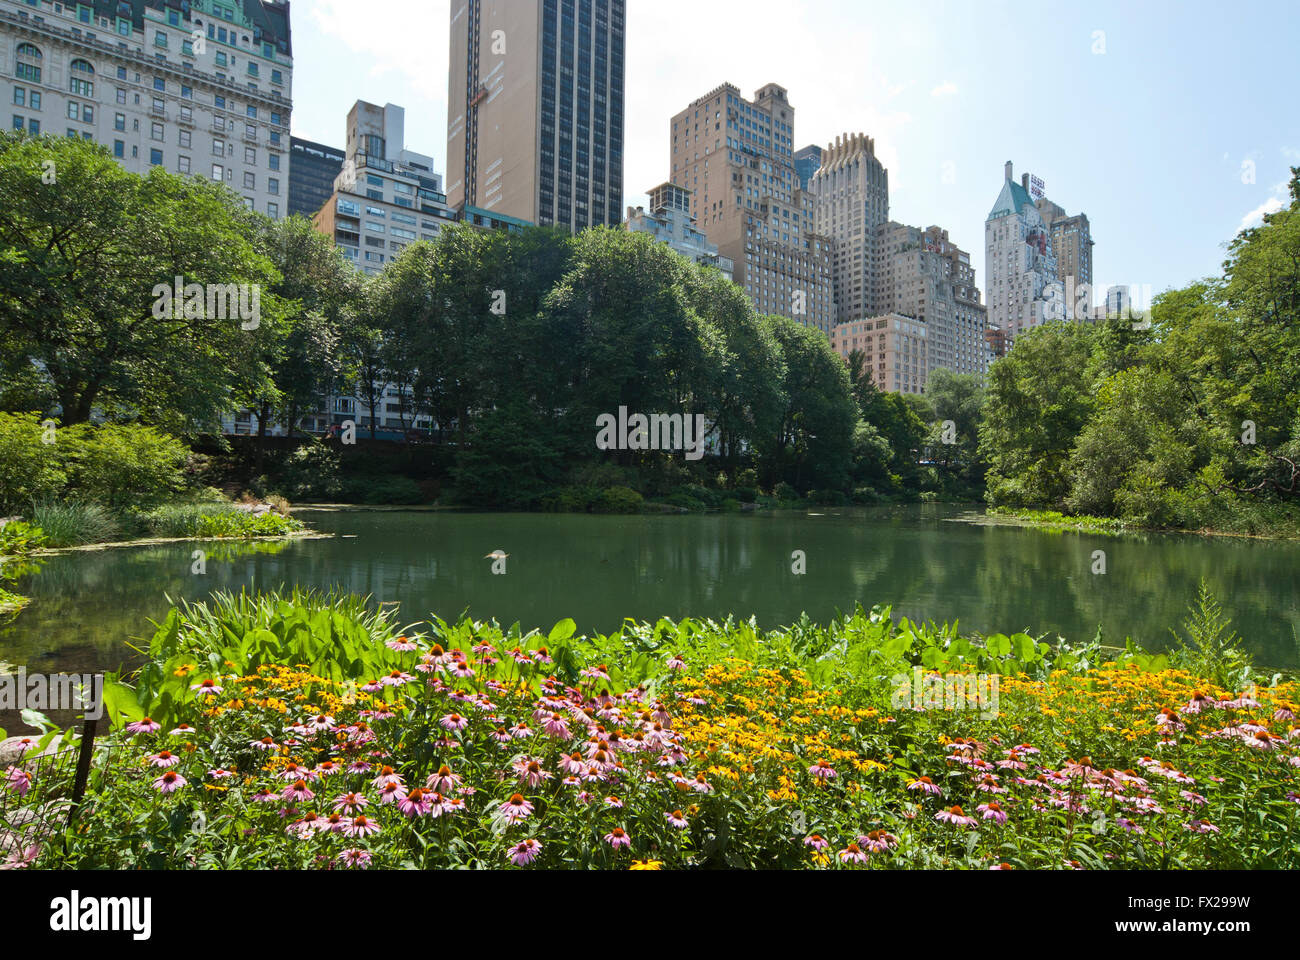 Central Park, NYC, New York, USA Photo Stock